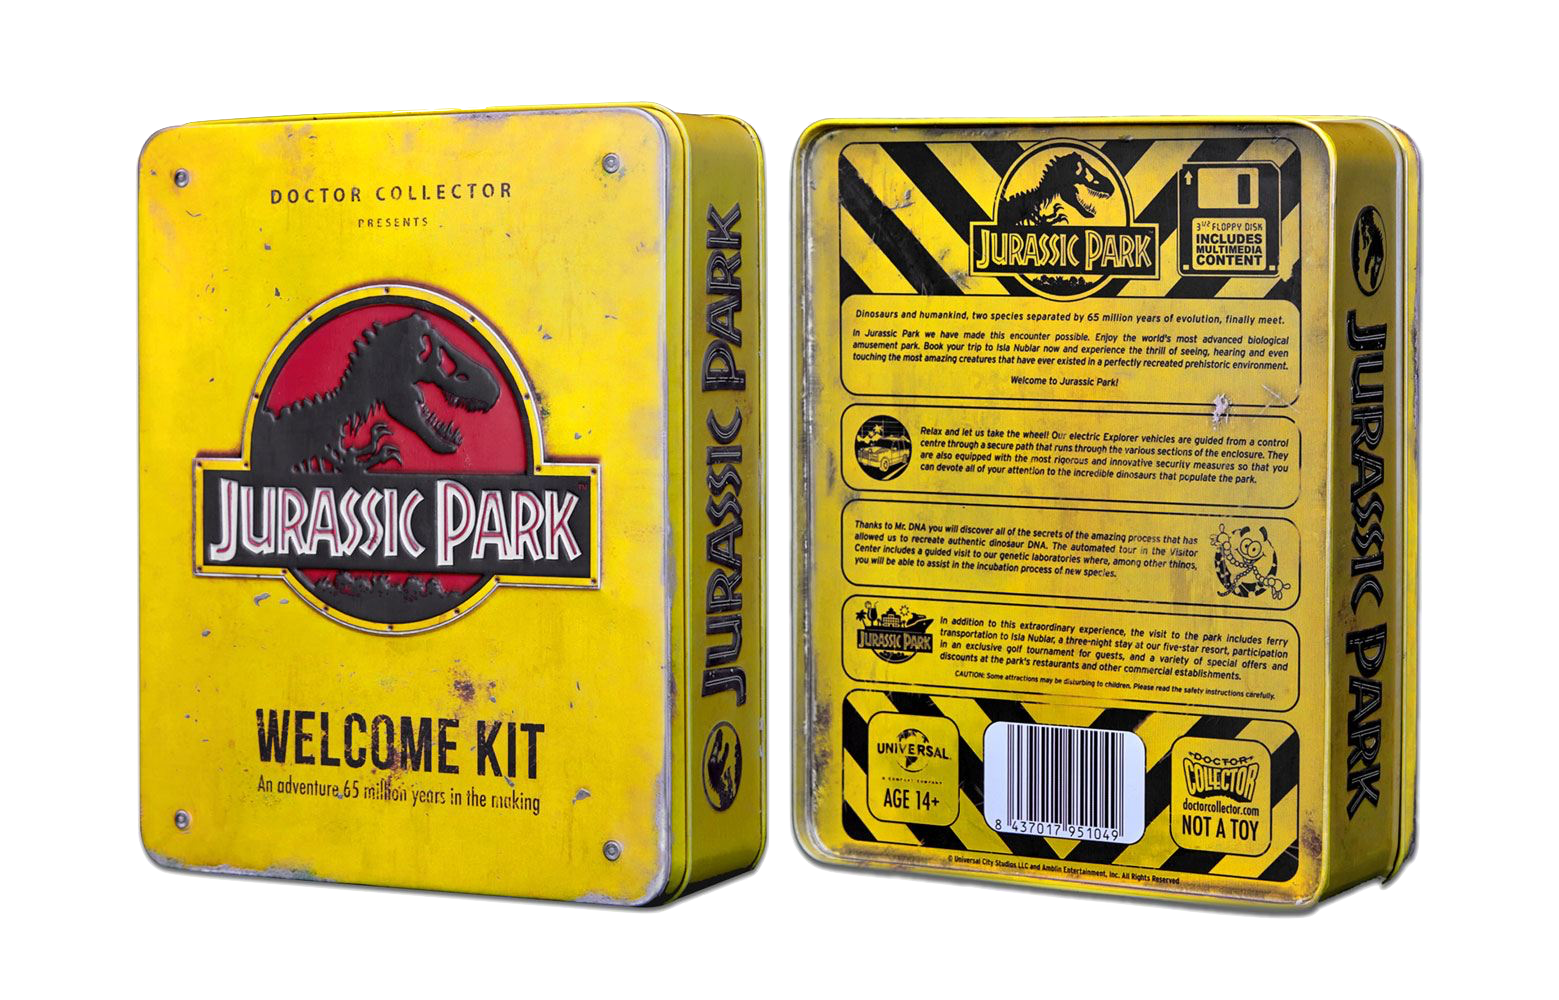 doctor-collector-jurassic-park-welcome-kit-amber-version-limited-toyslife